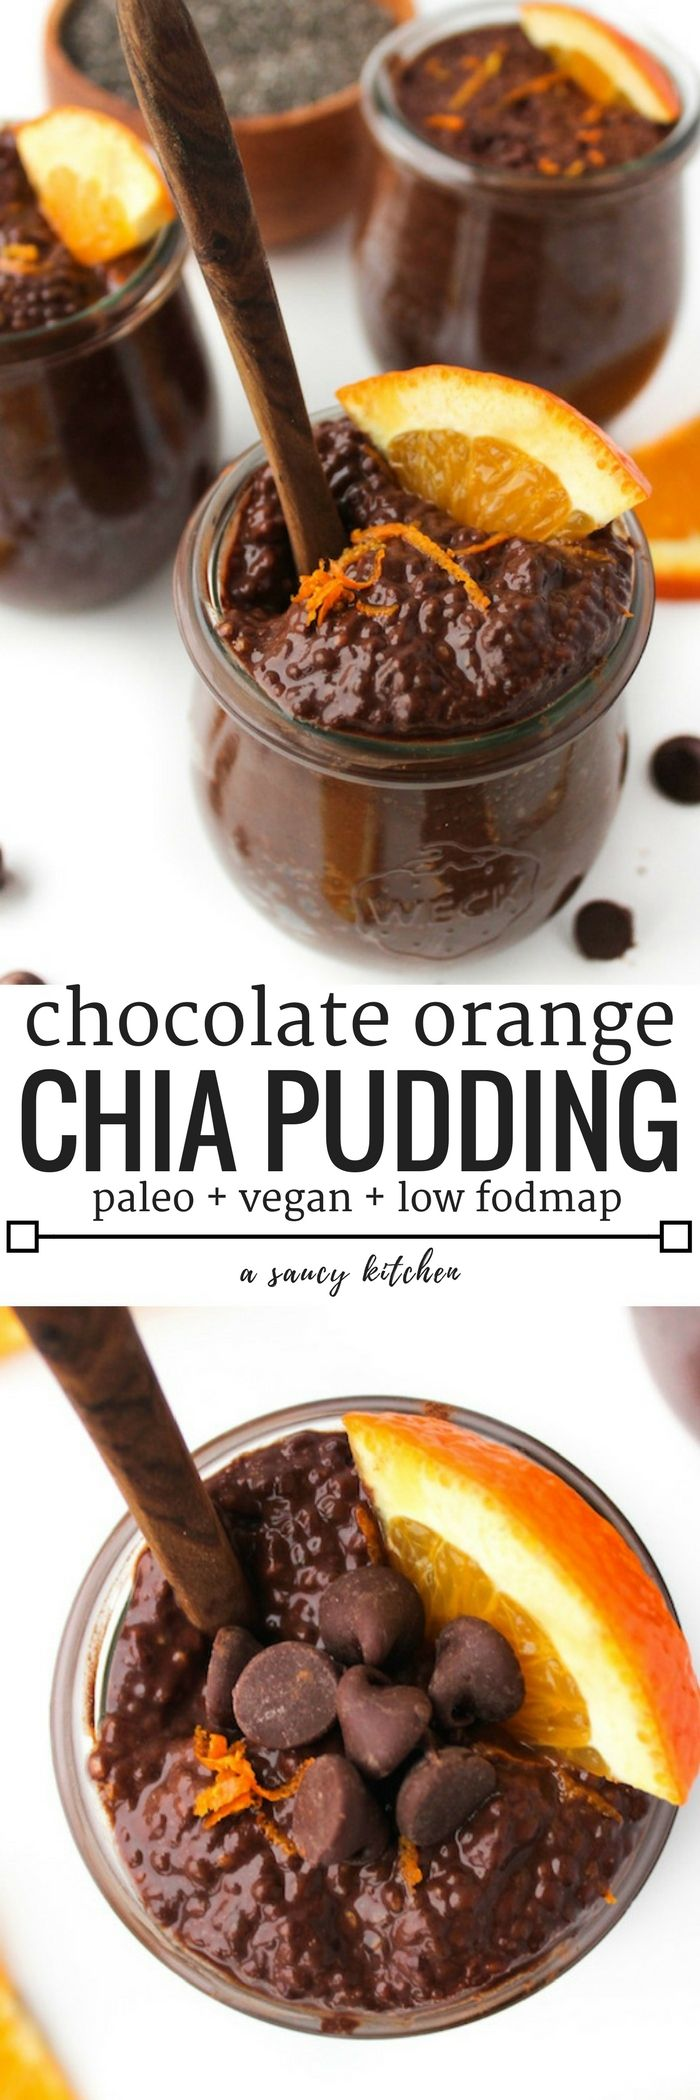 Chocolate Orange Chia Pudding   whipped together in a pinch and is perfect for breakfast and dessert alike.   Paleo, Vegan, Low FODMAP